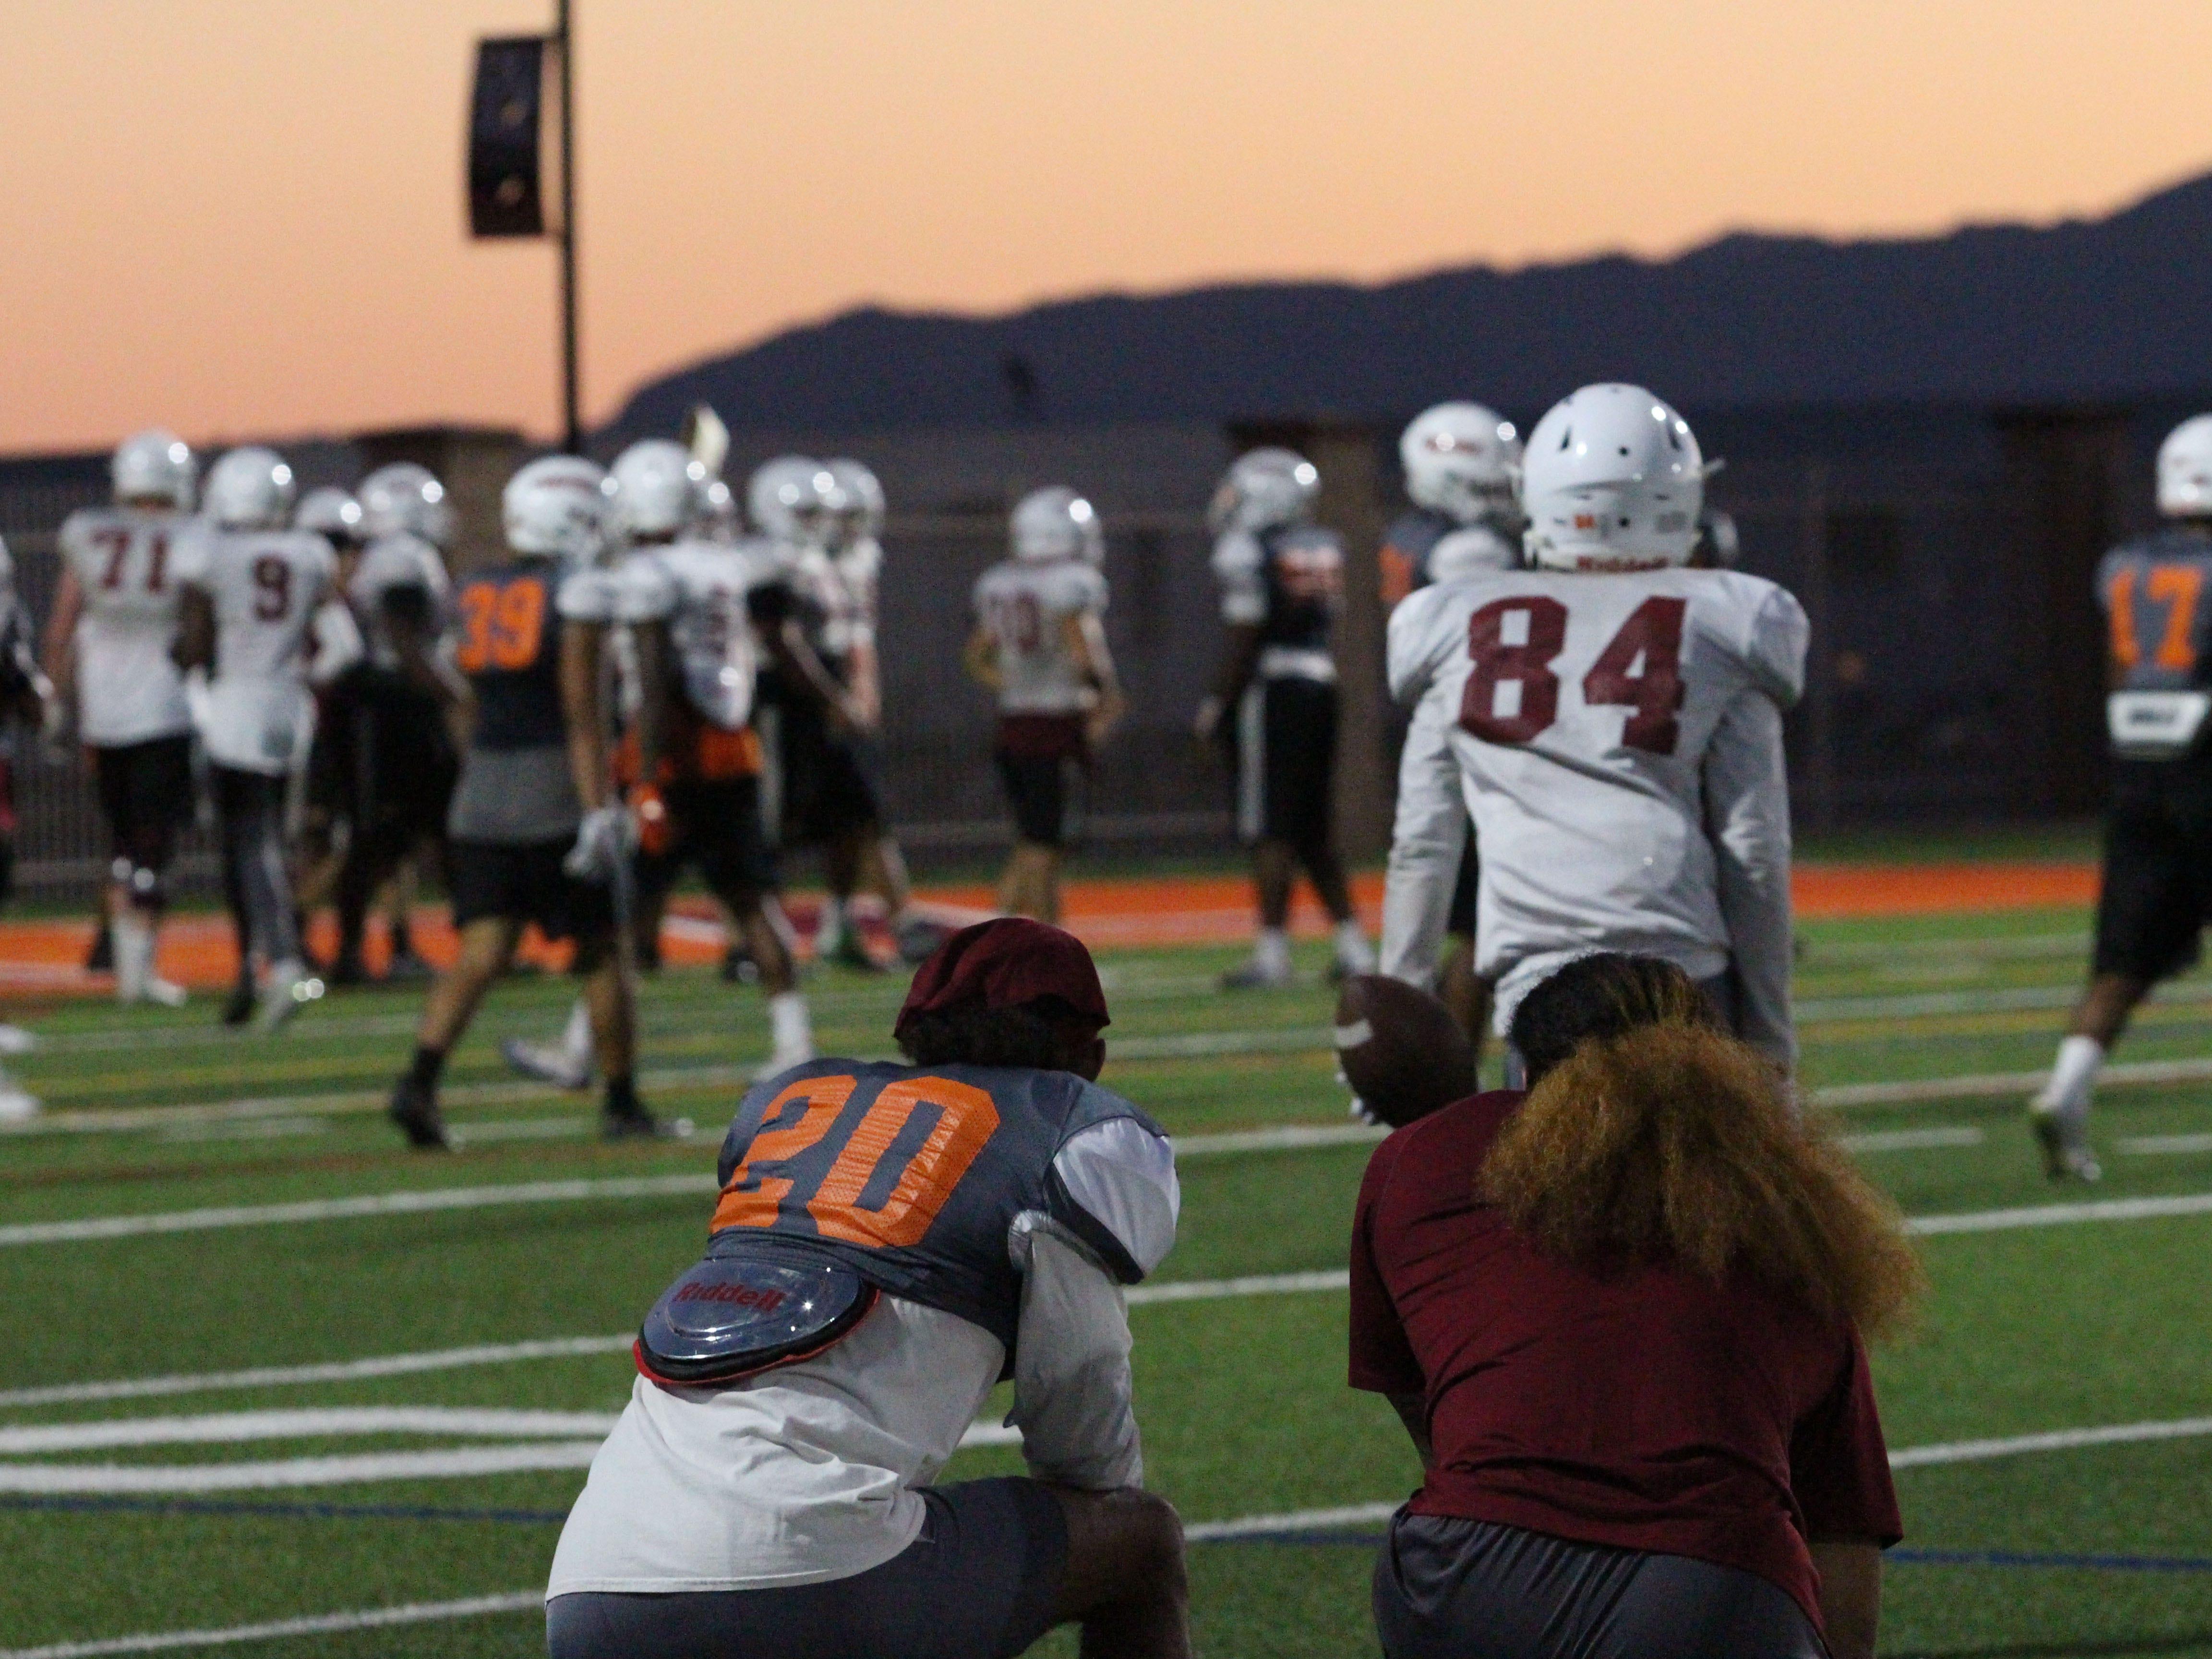 OUAZ's Joshua Vizcaya takes a knee and watches practice on the sideline on Tuesday night in Surprise on Sept. 11, 2018.